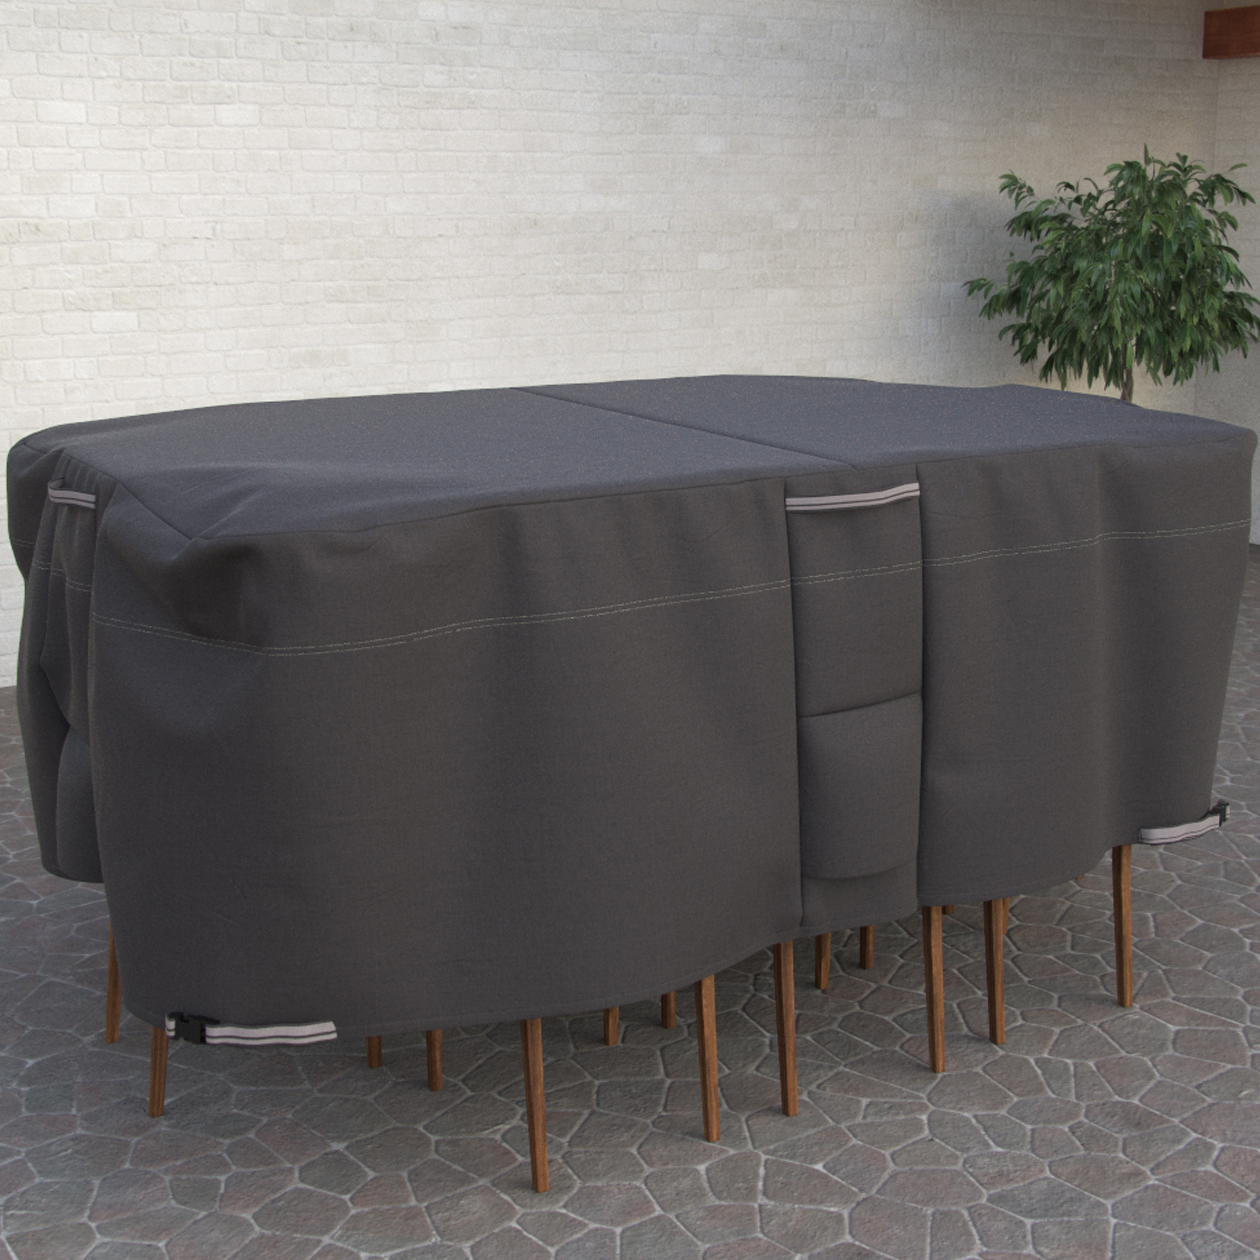 Oval Rectangle Patio Table And Chair